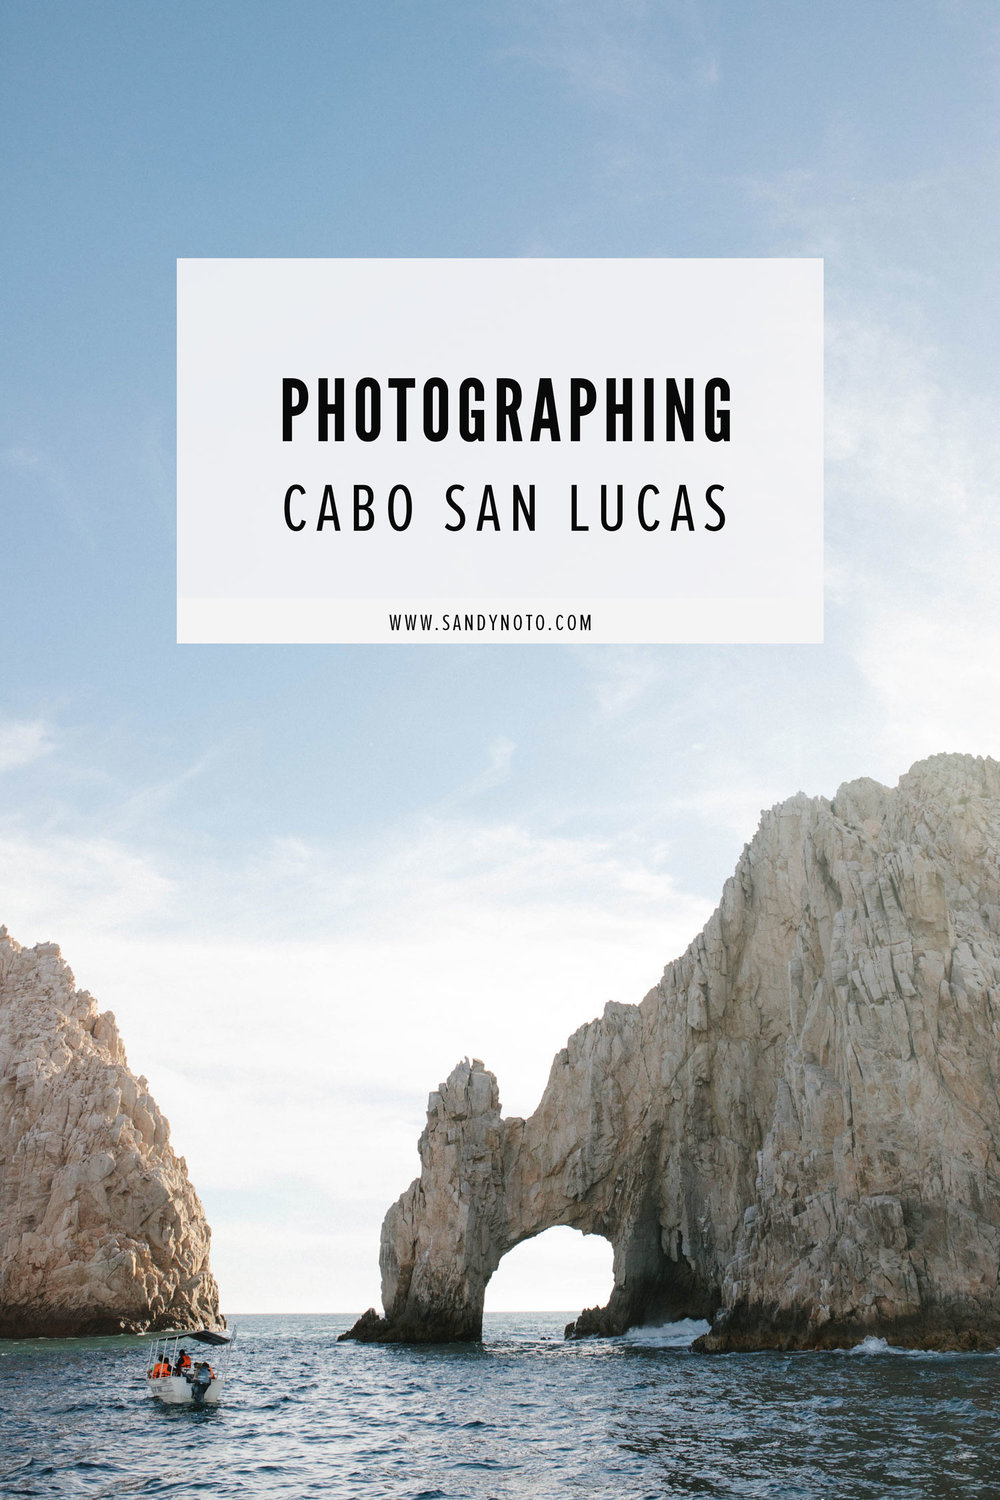 Photographing Cabo